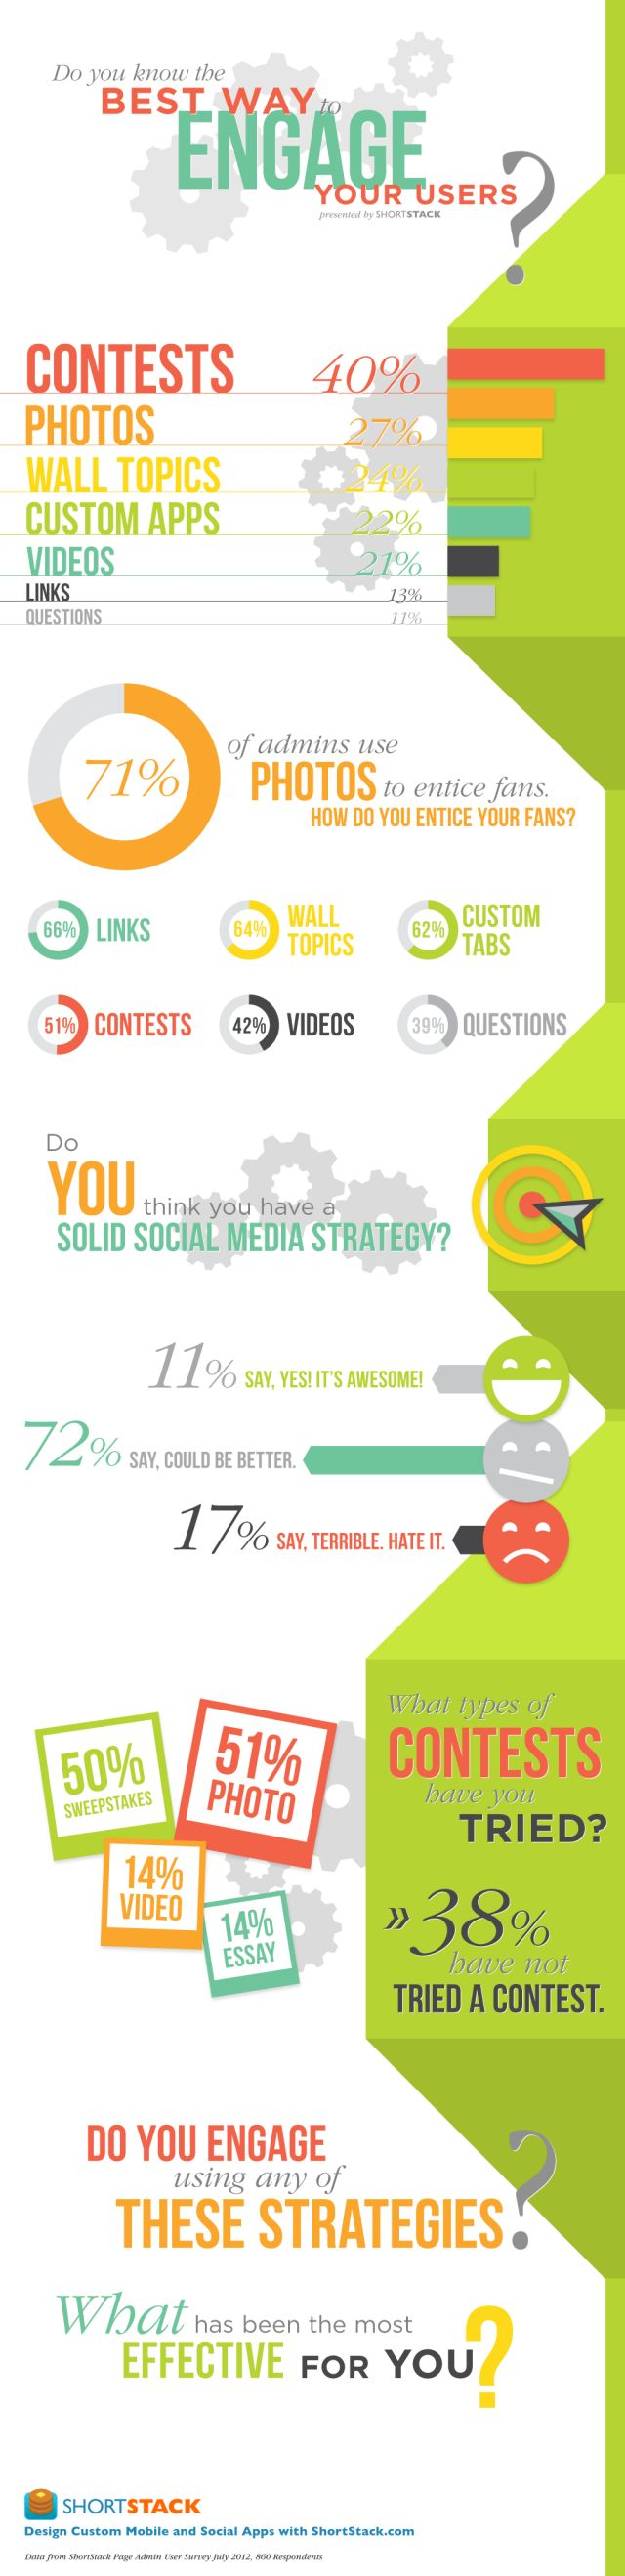 Marketing Technology BlogInfographic: Successful Strategies for Social Enticement » Marketing Technology Blog